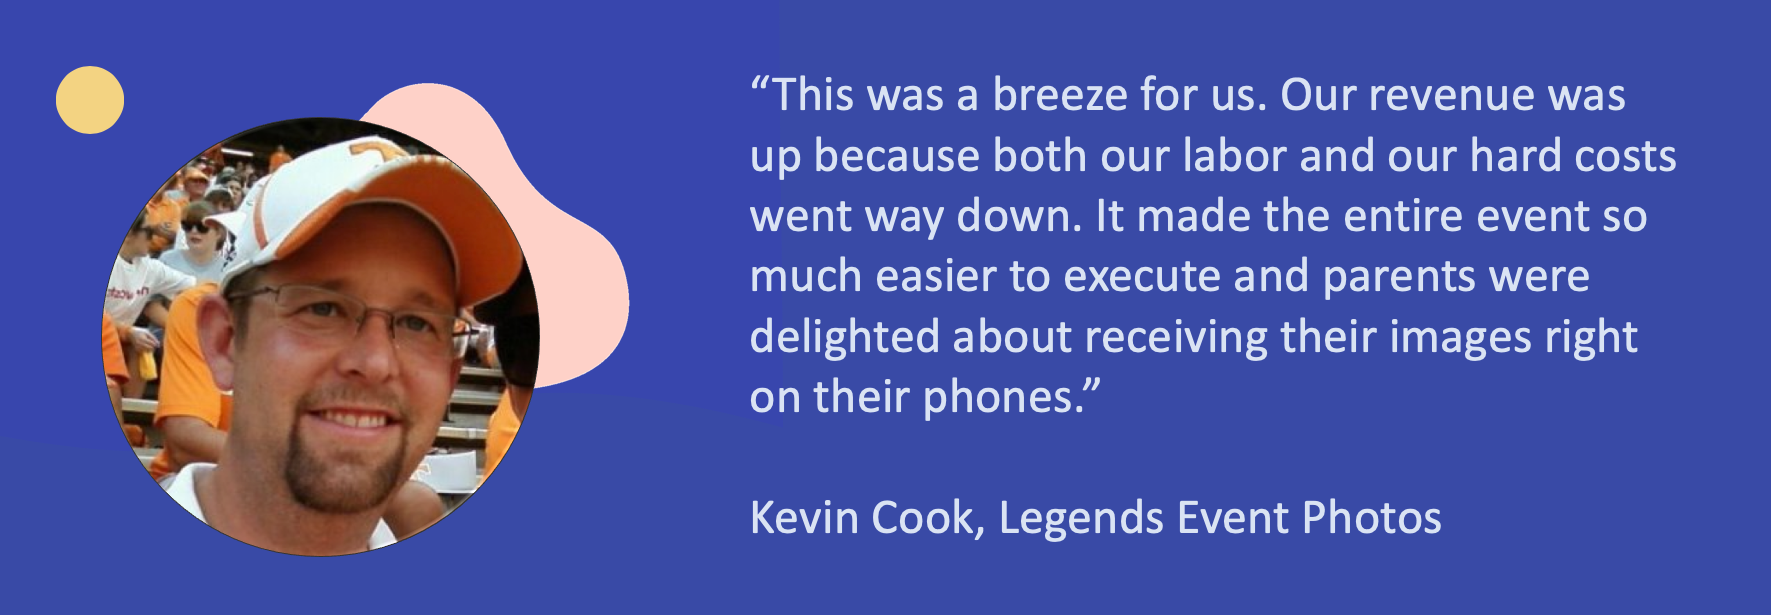 Kevin Cook Quote